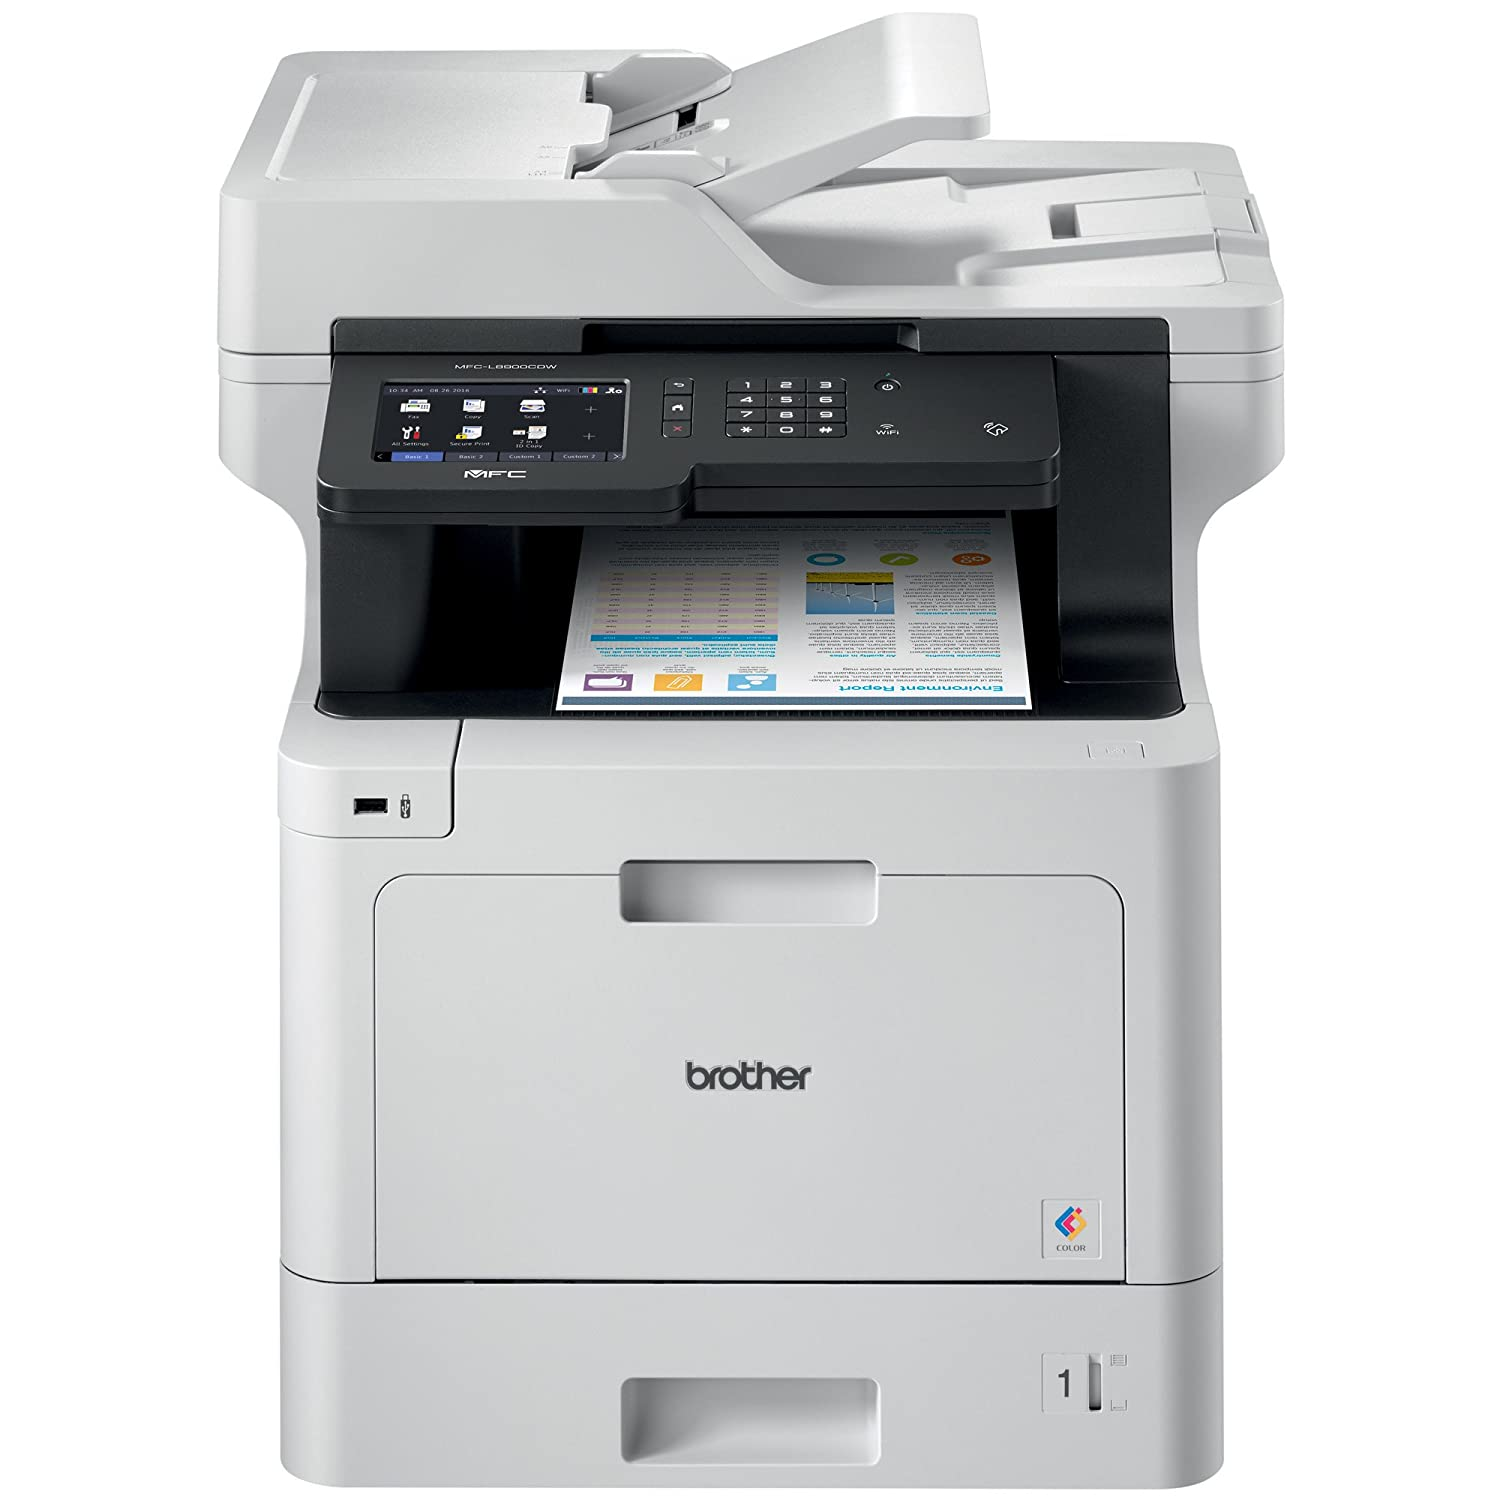 Home & Office Printers | Amazon.com | Office Electronics - Printers ...